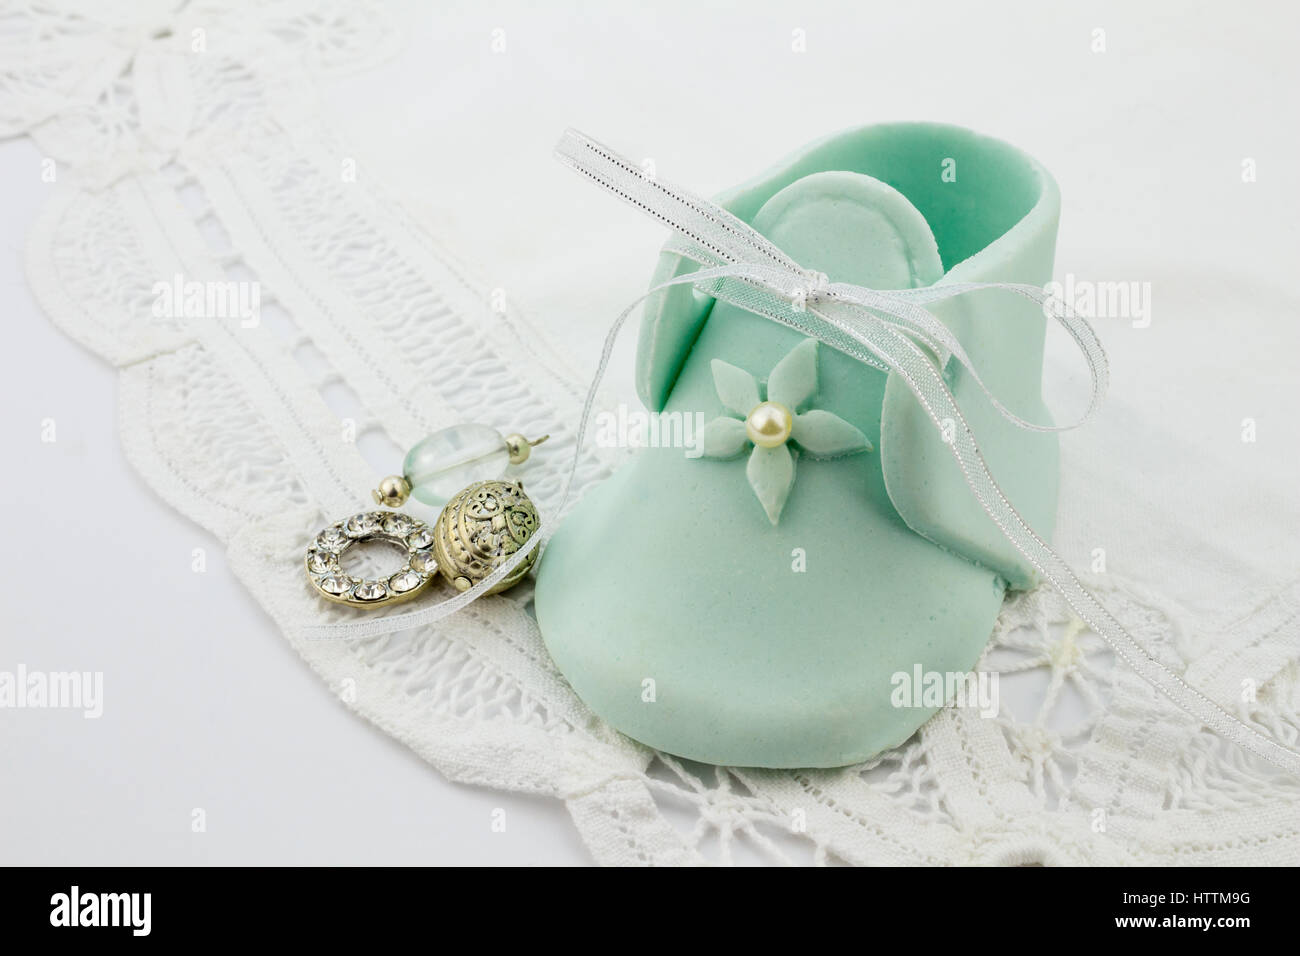 Blue fondant baby bootee on white lace background with silver charms for celebration invitation - Stock Image